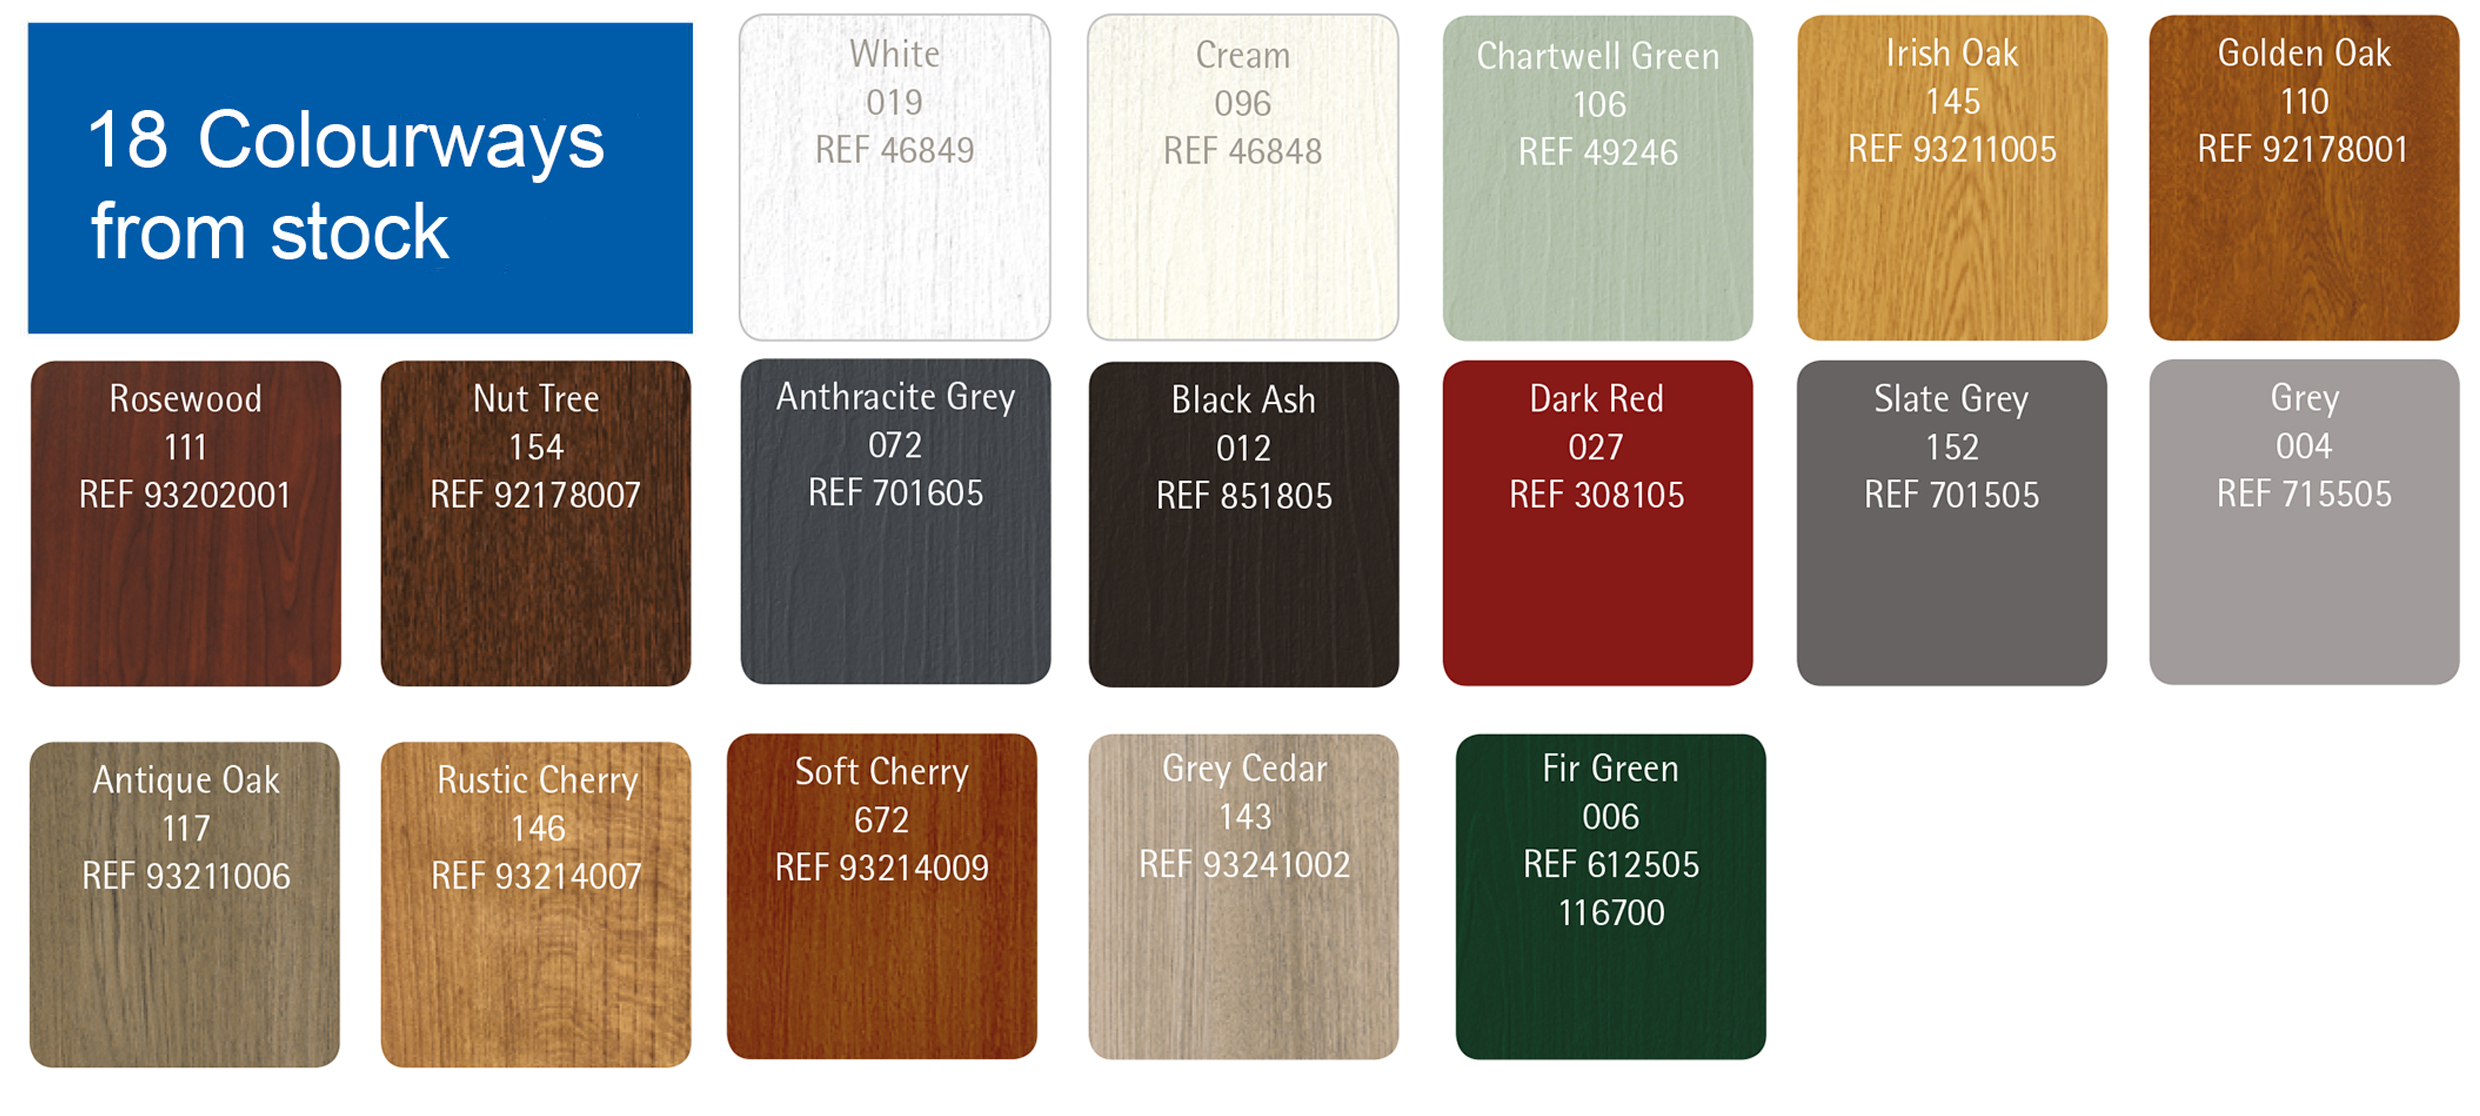 Colour Range - Our UPVC Patio Doors are available in 18 premium foil options that been specifically designed and manufactured to suit and improve the look of any home.